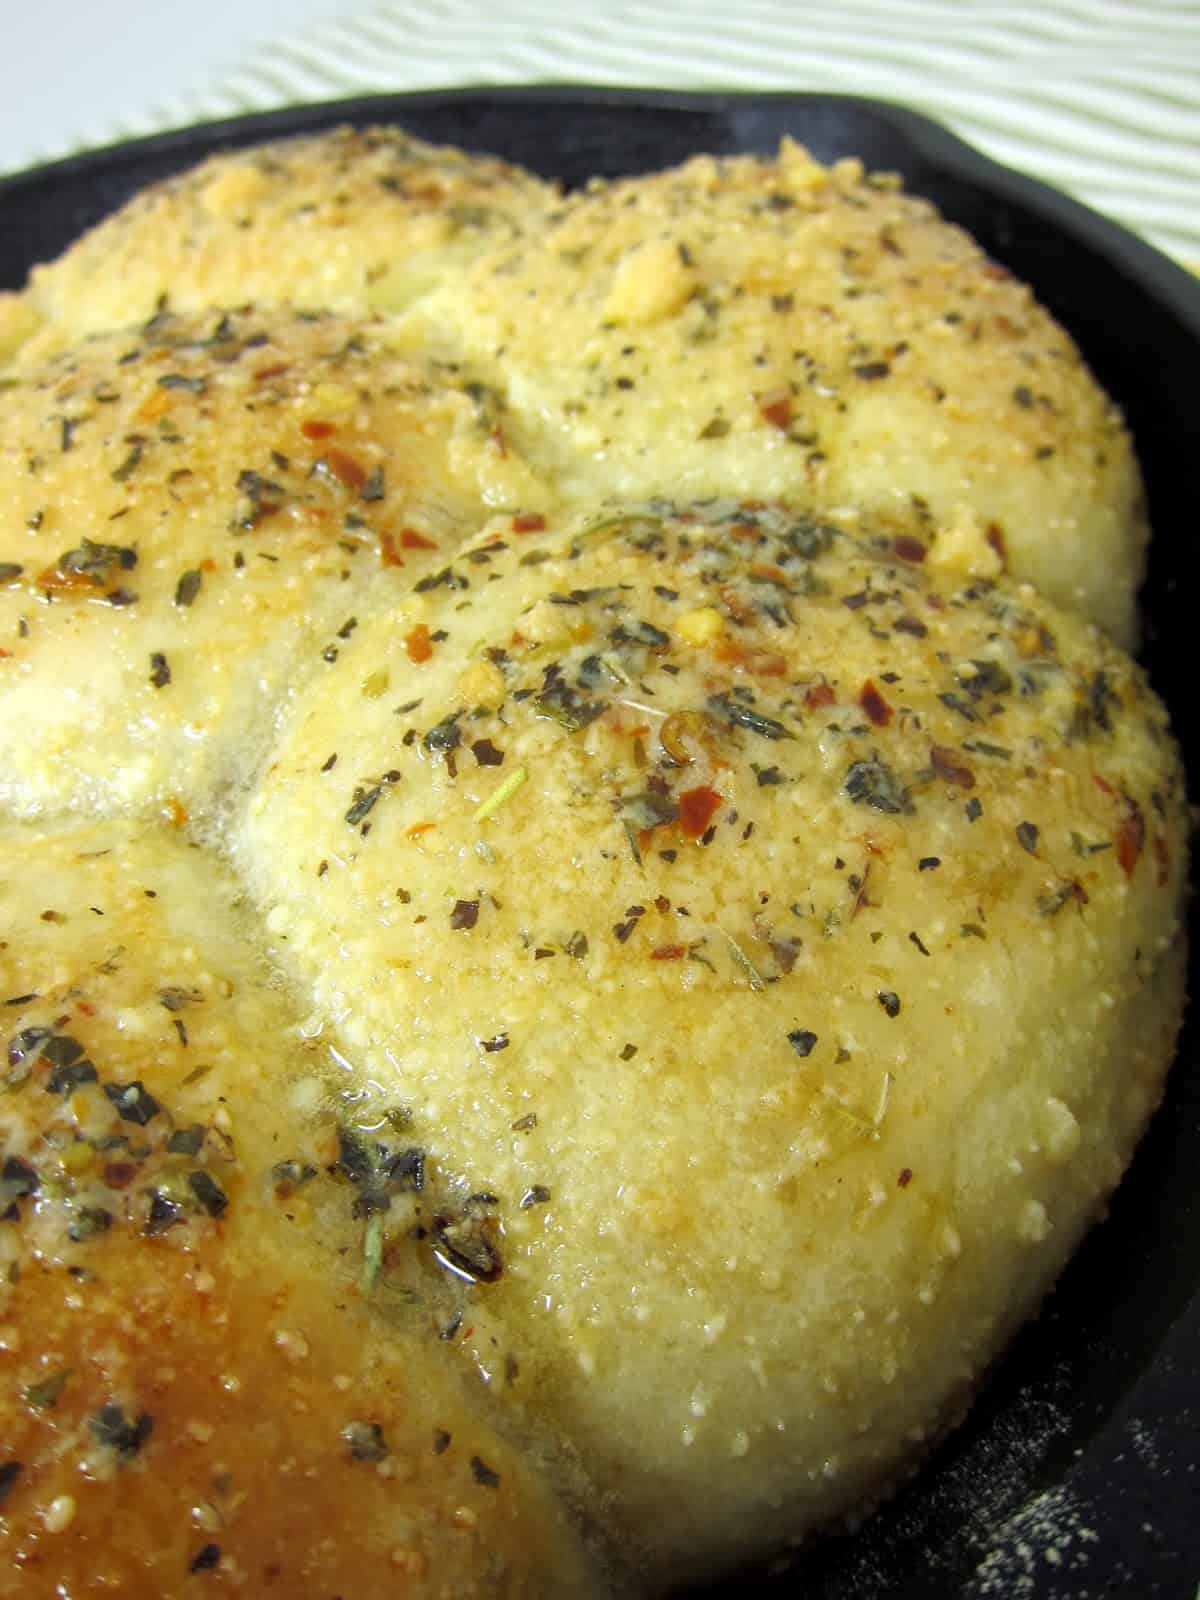 Italian Herb Skillet Bread Recipe - frozen bread dough, butter and Italian herb blend - SO good. I could literally eat the entire pan myself!